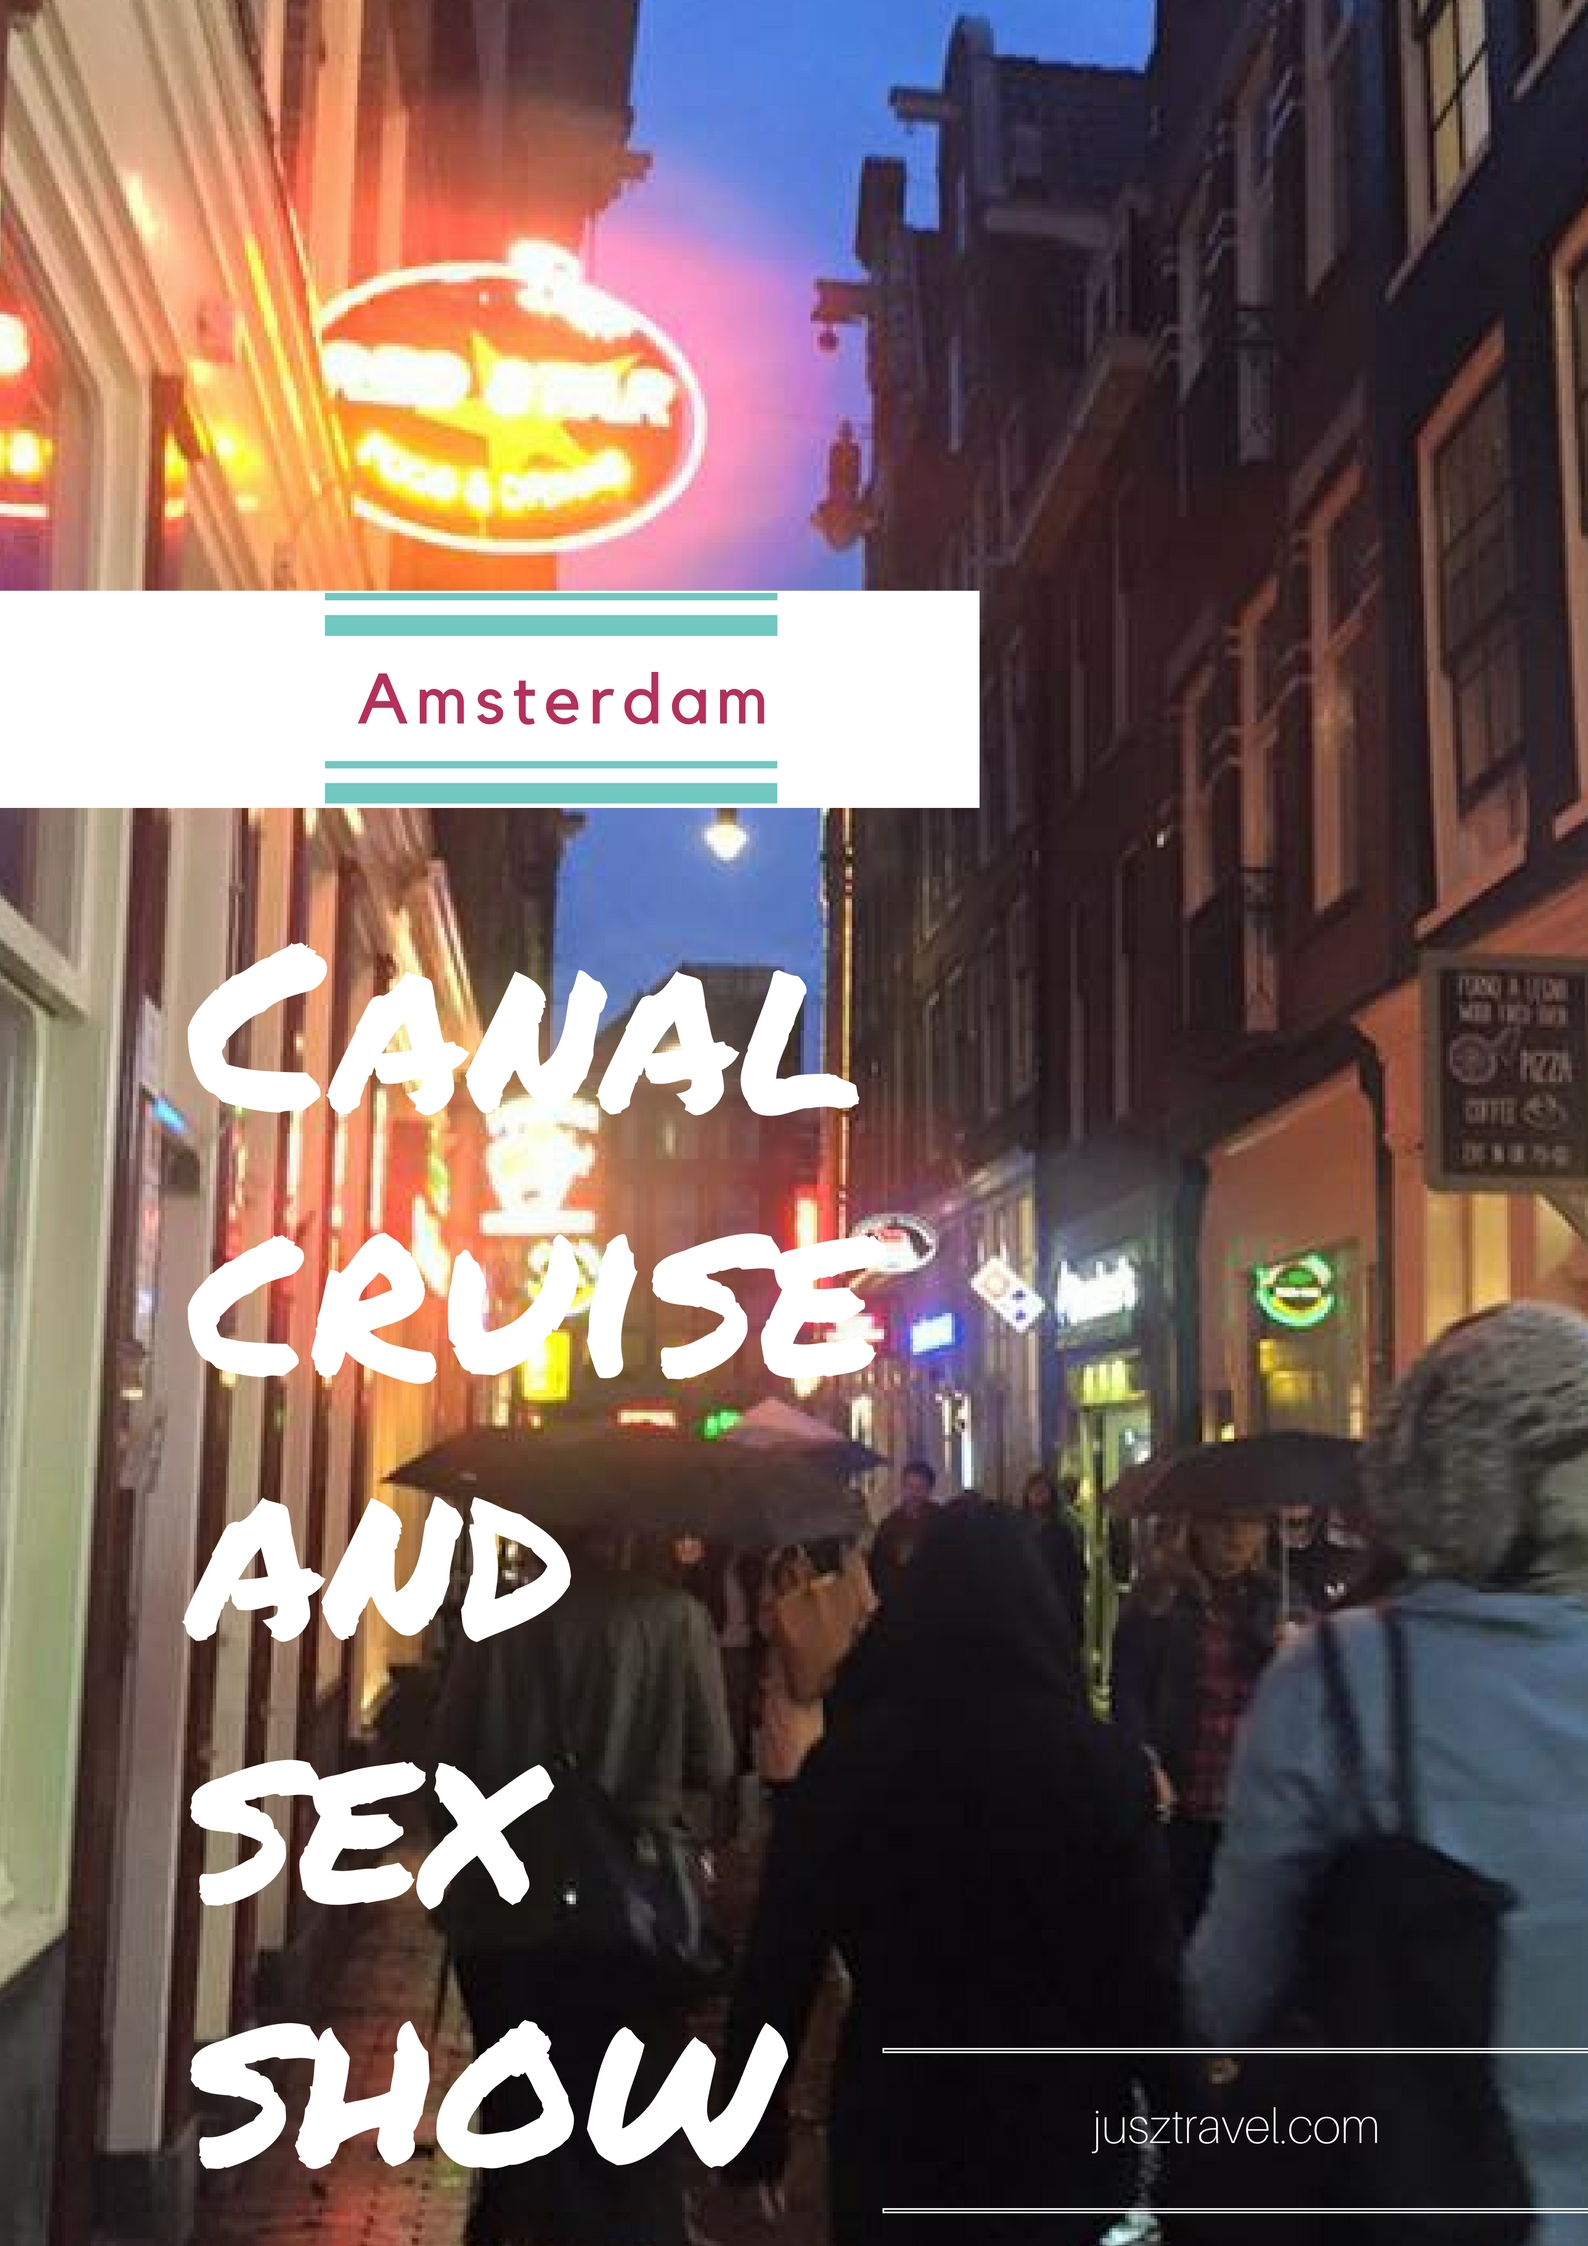 Have Amsterdamn sex shows agree, remarkable